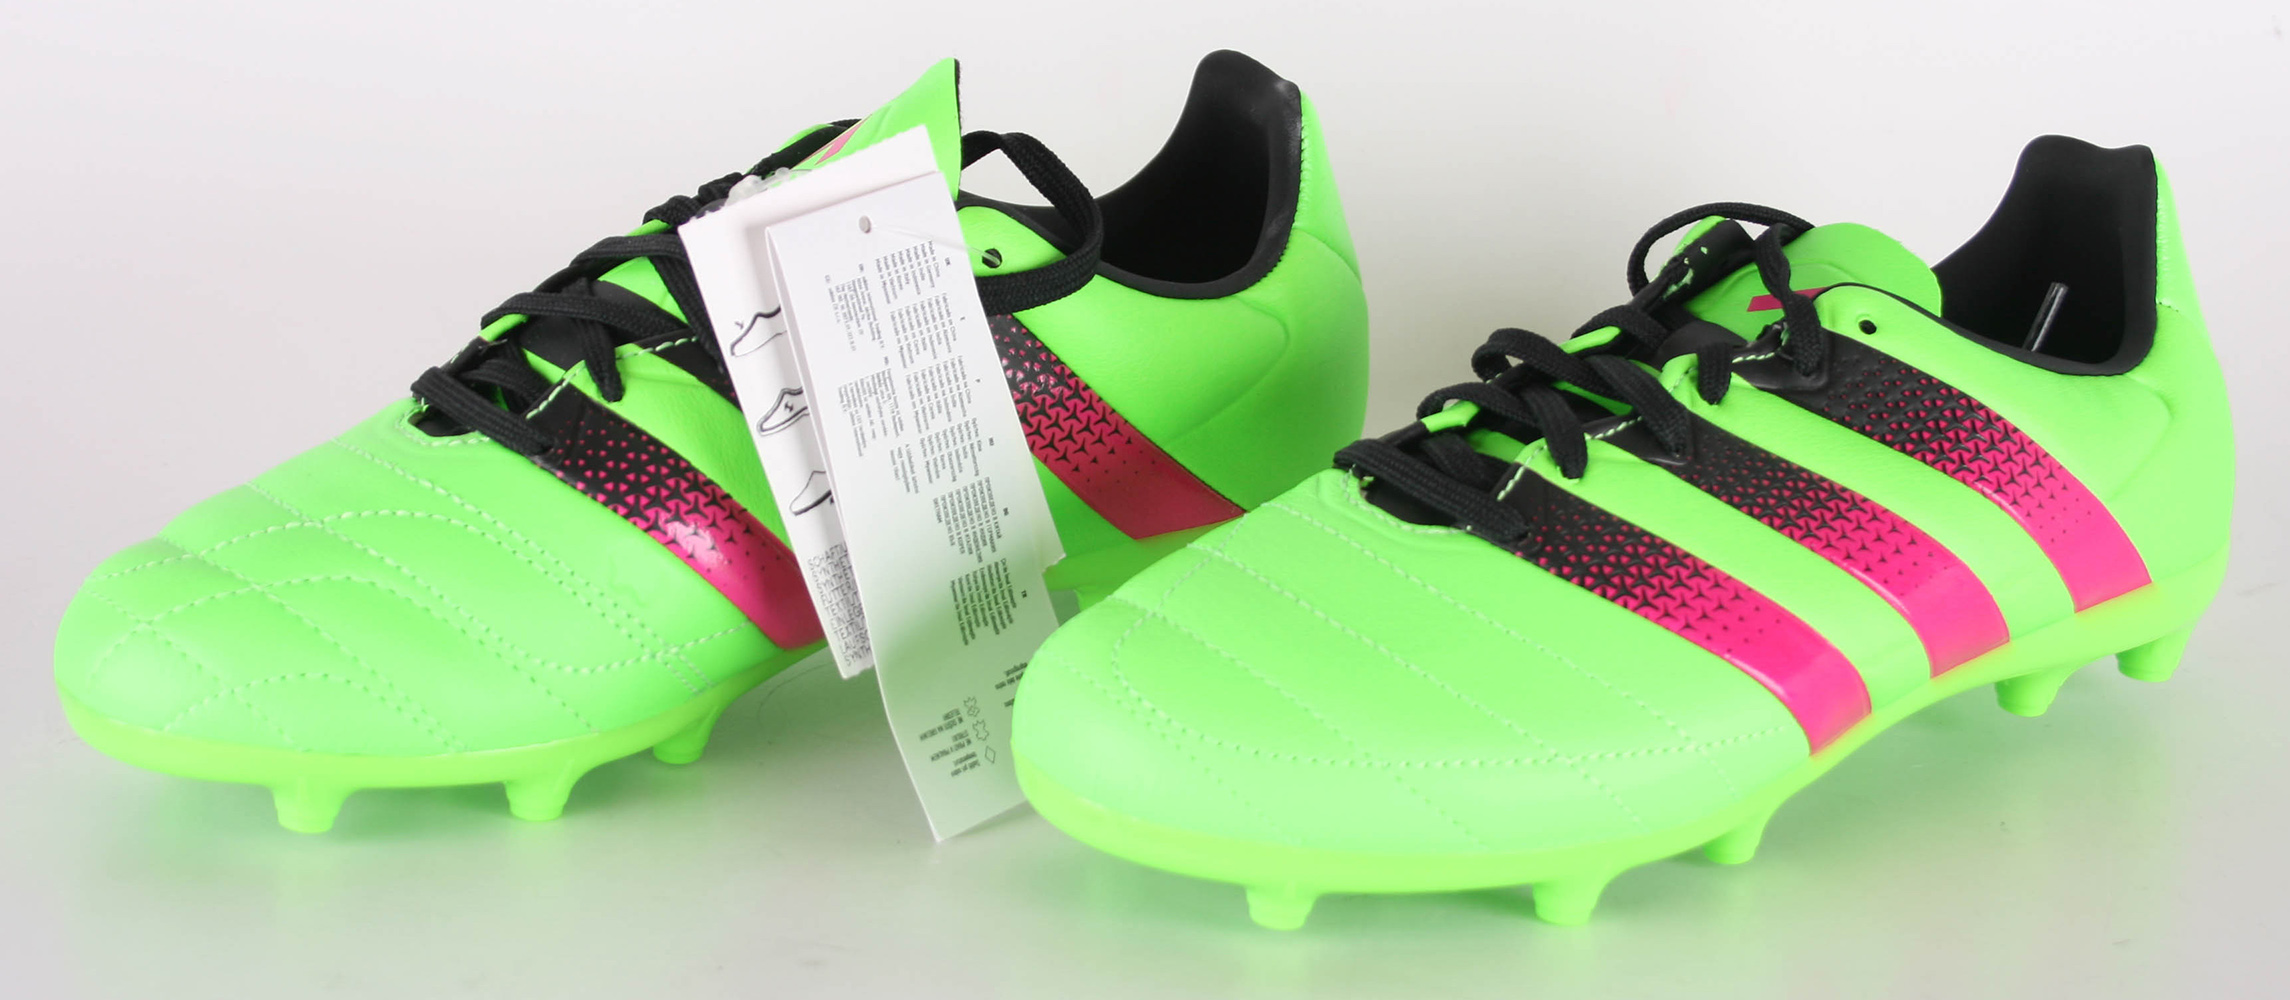 Details about Adidas Ace 16.3 FgAg J Leather Football Shoes Eu 36 Verde Versol Rosimp Negbas